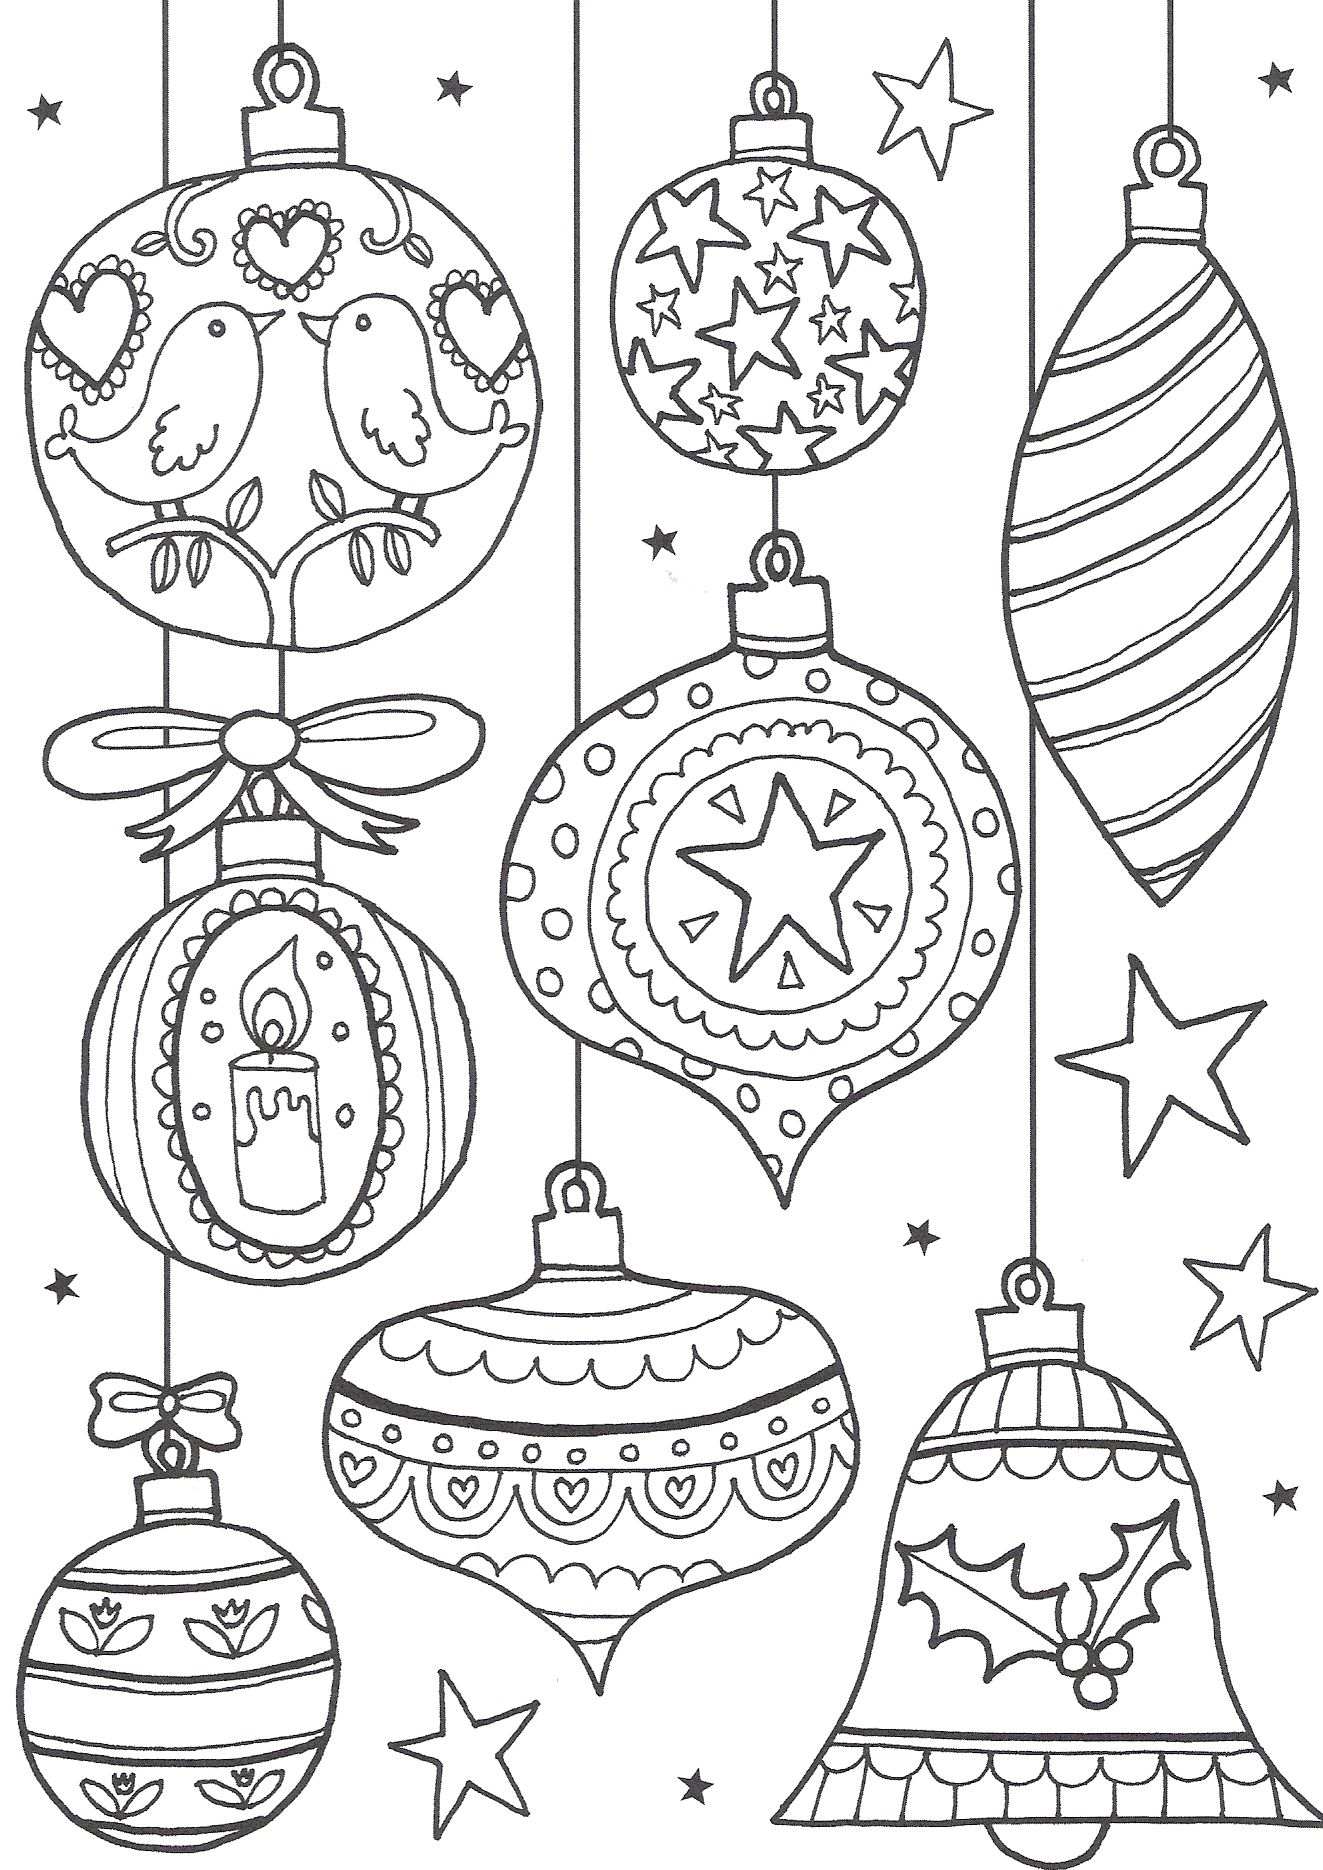 Christmas Garland Coloring Pages With Free Colouring For Adults The Ultimate Roundup